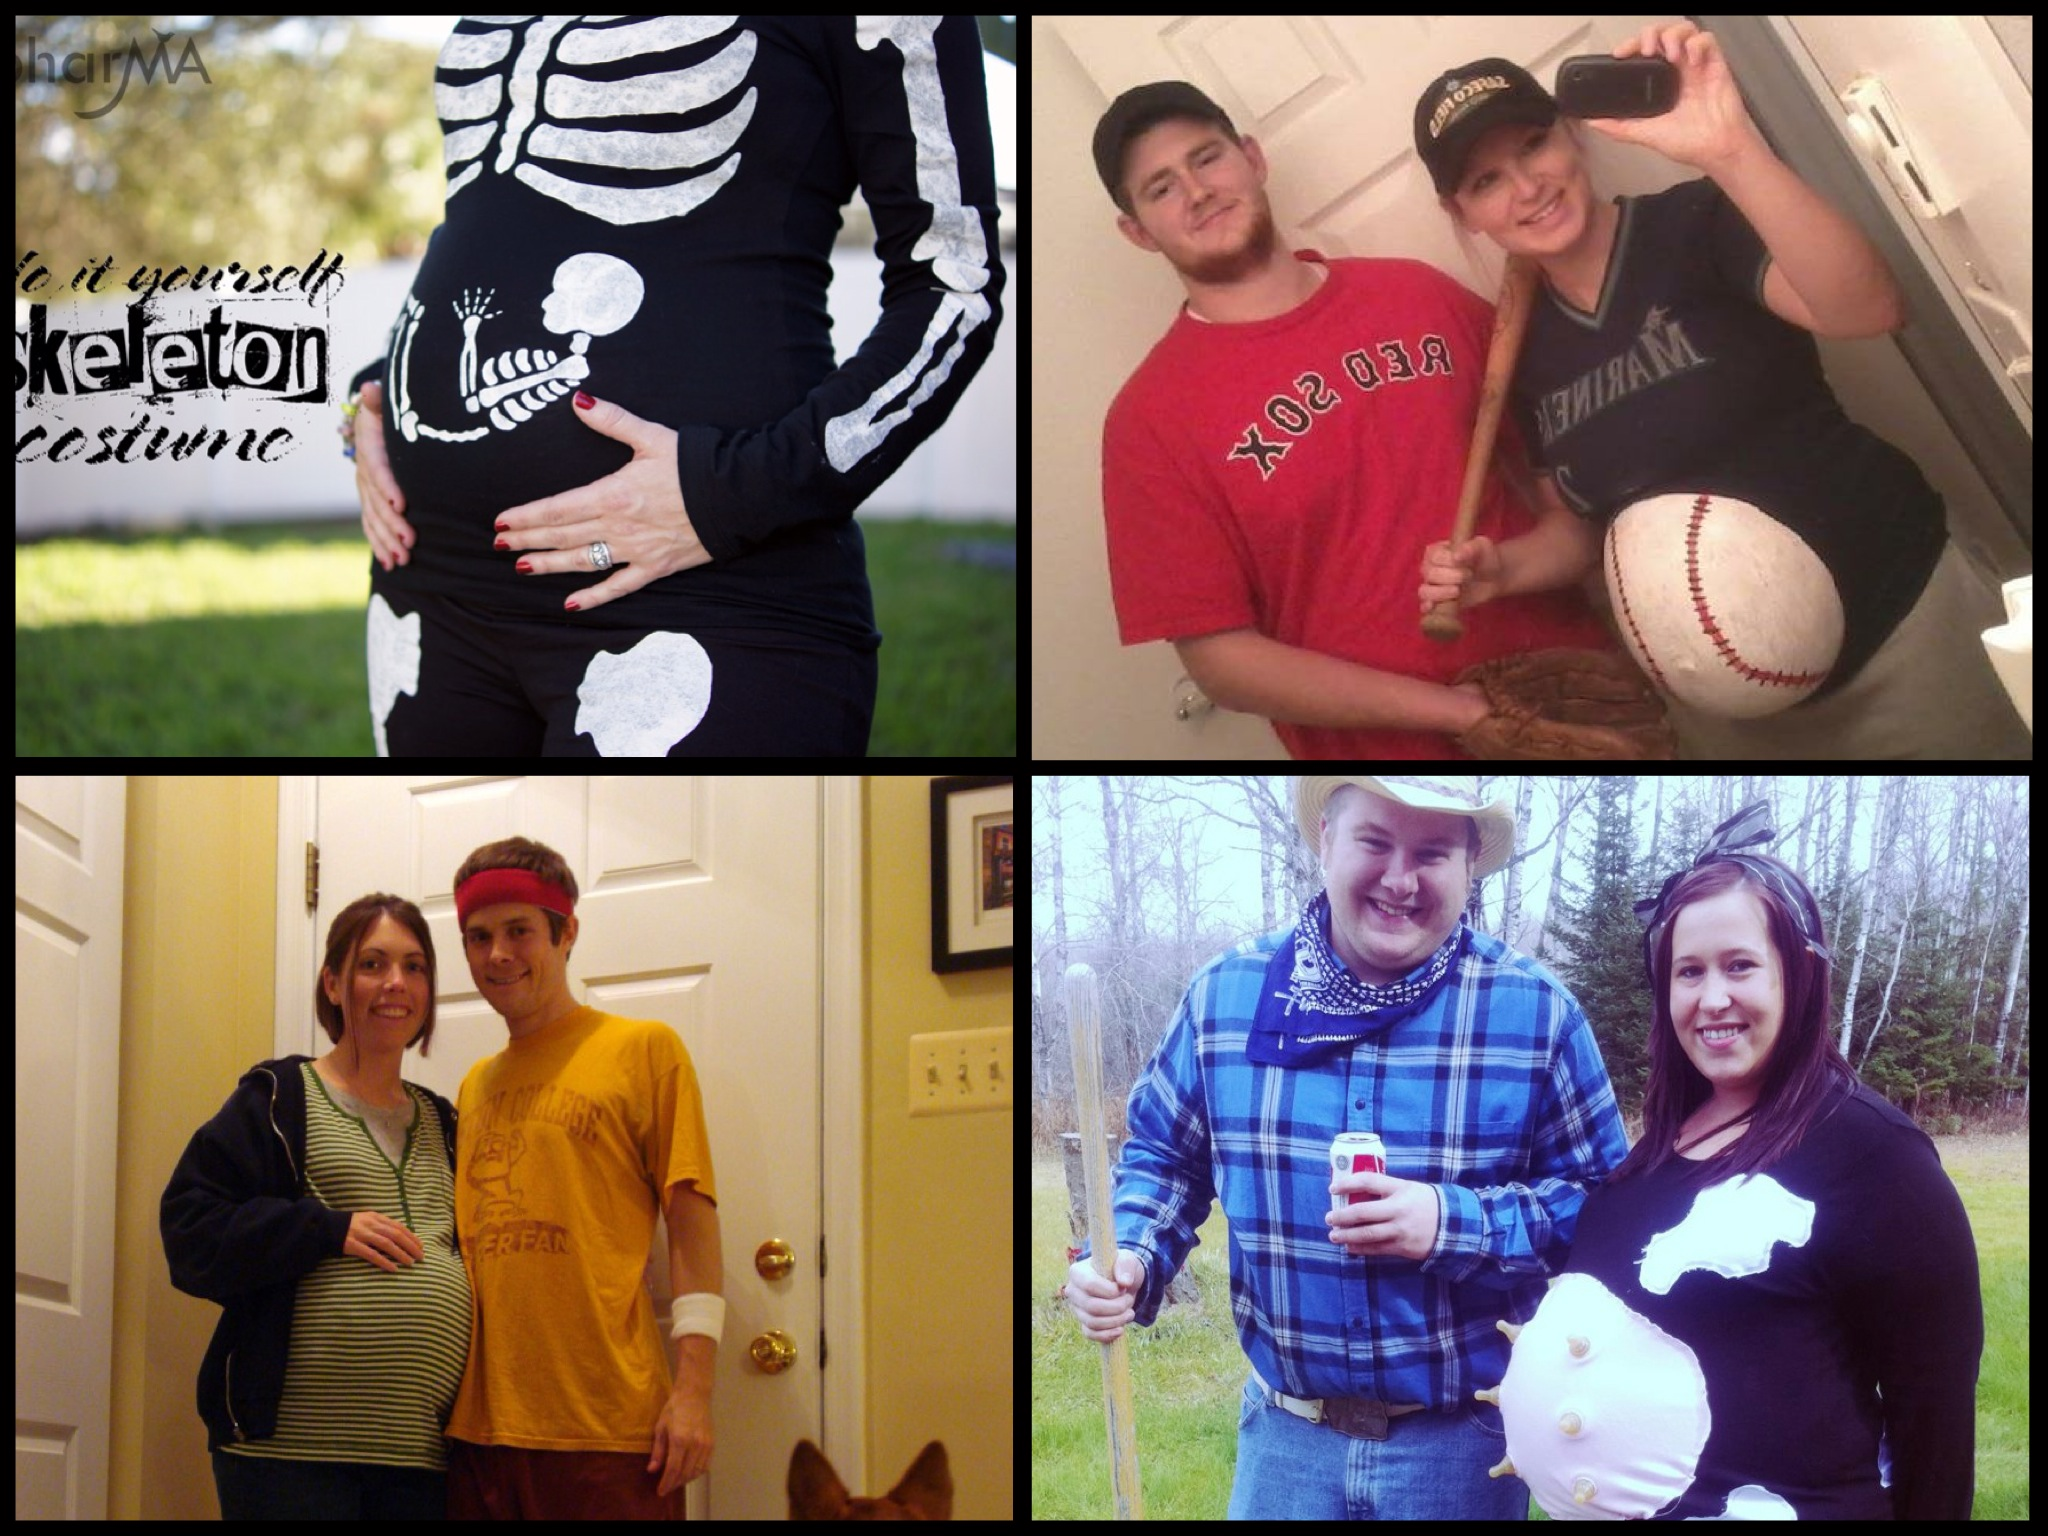 Halloween Costume Ideas For Pregnant Ladies.5 Fun Halloween Costume Ideas For Pregnant Women Parentmap